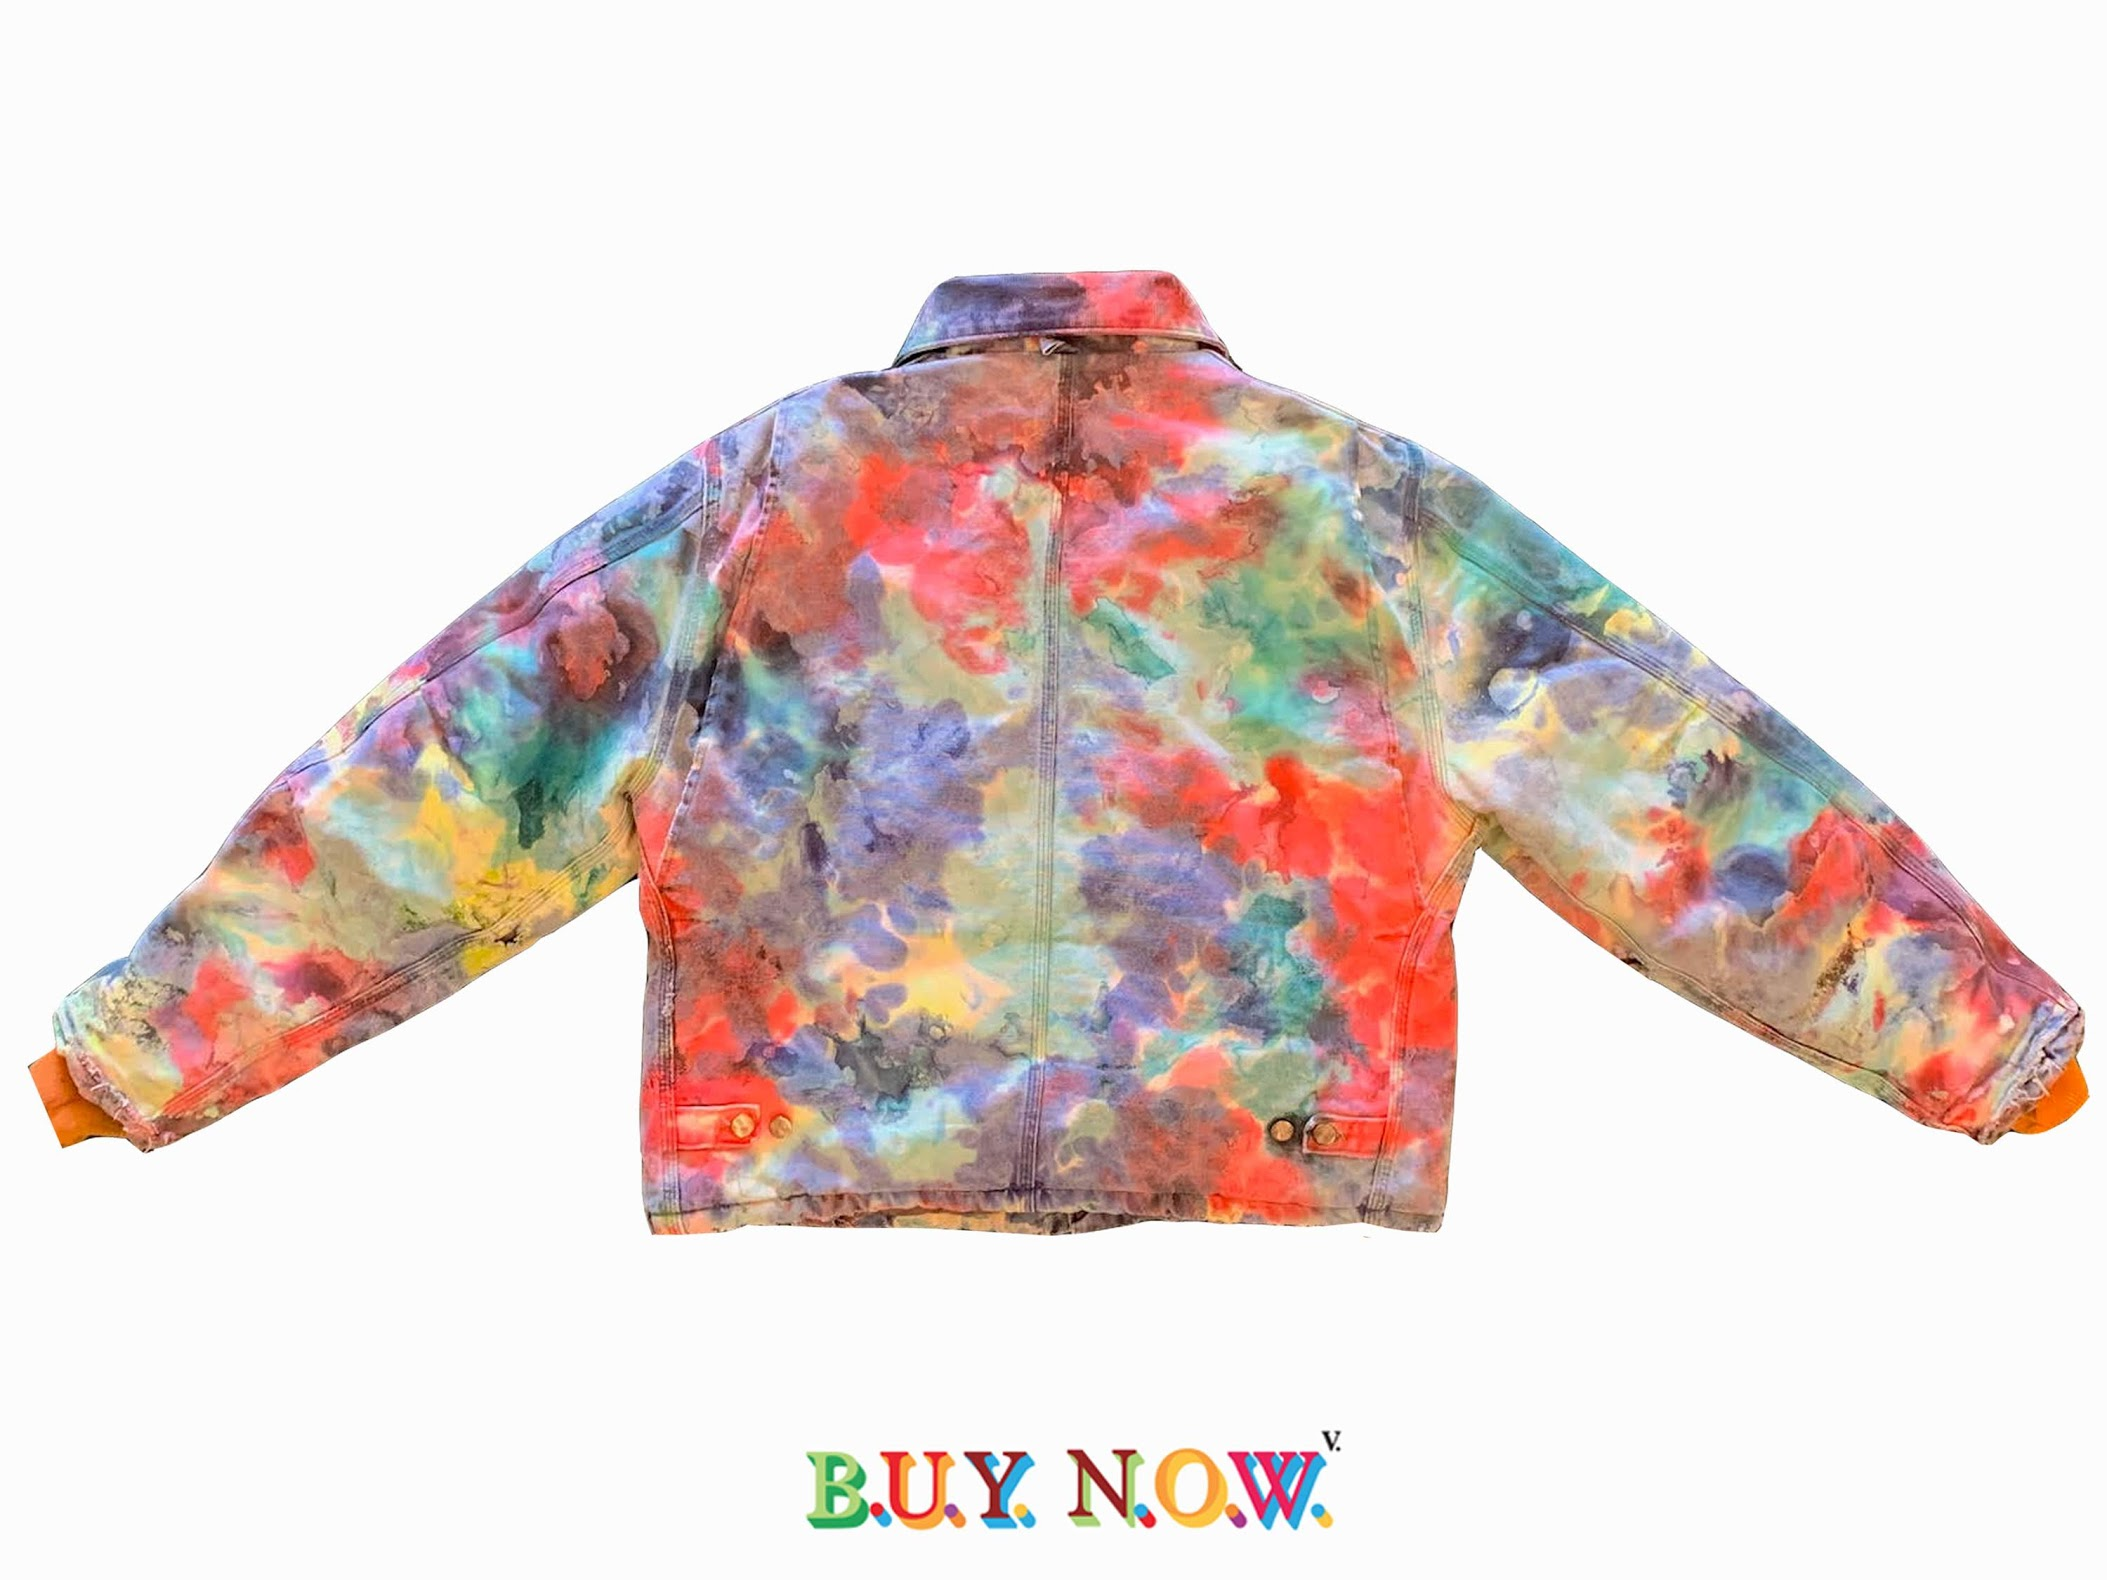 BACK_WATERCOLOR AUTHENTICATOR JACKET.jpg